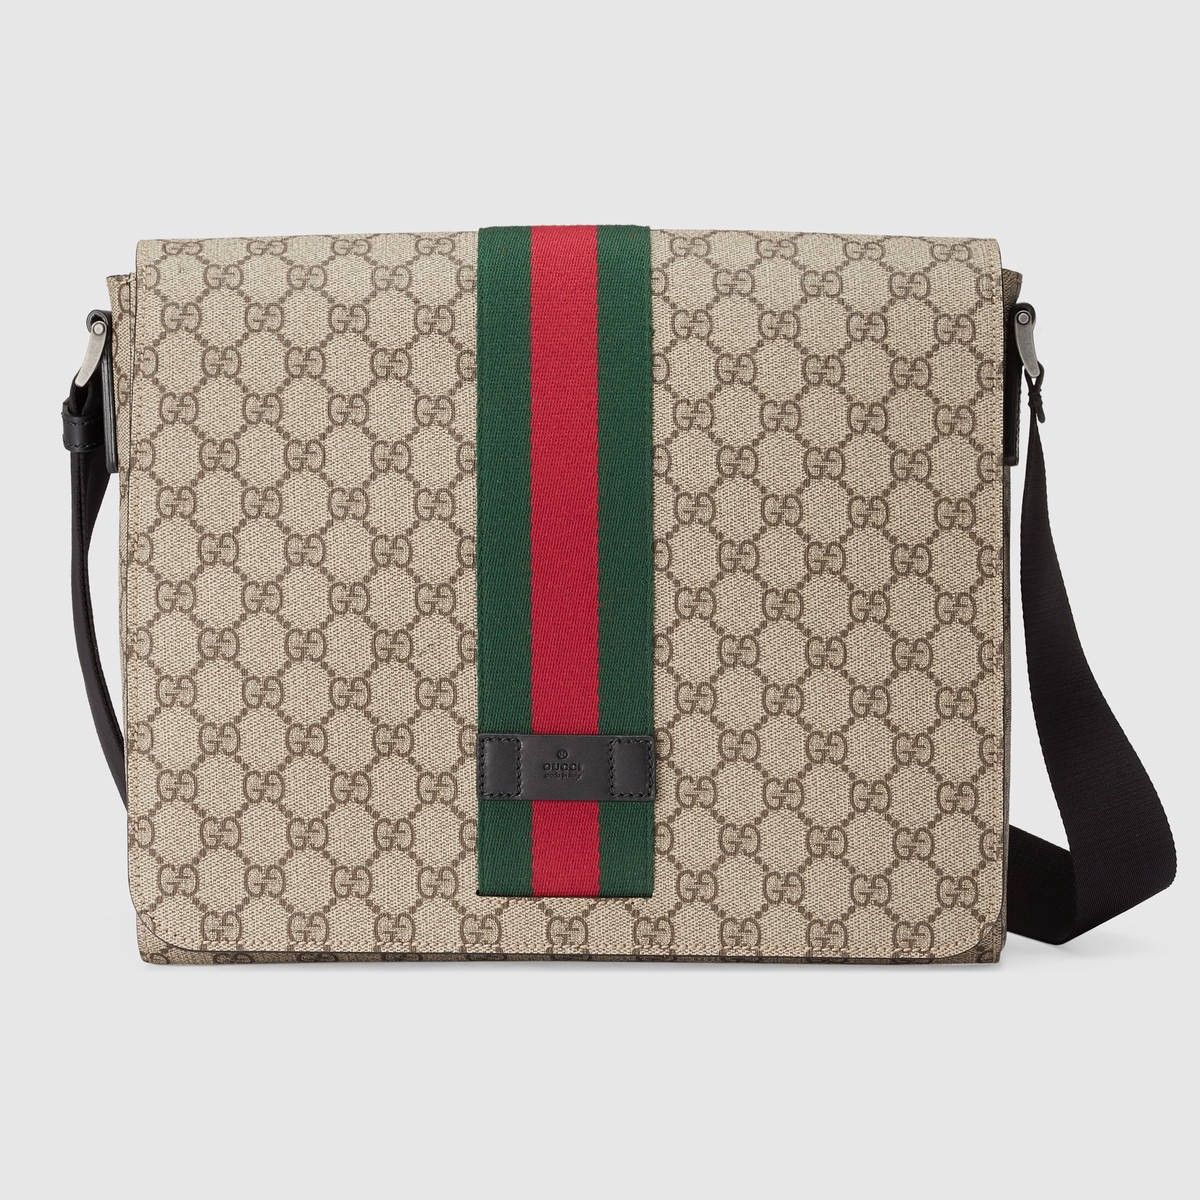 6704c76cf2be GUCCI Gg Supreme Messenger - Gg Supreme. #gucci #bags #shoulder bags # leather #canvas #nylon #lining #